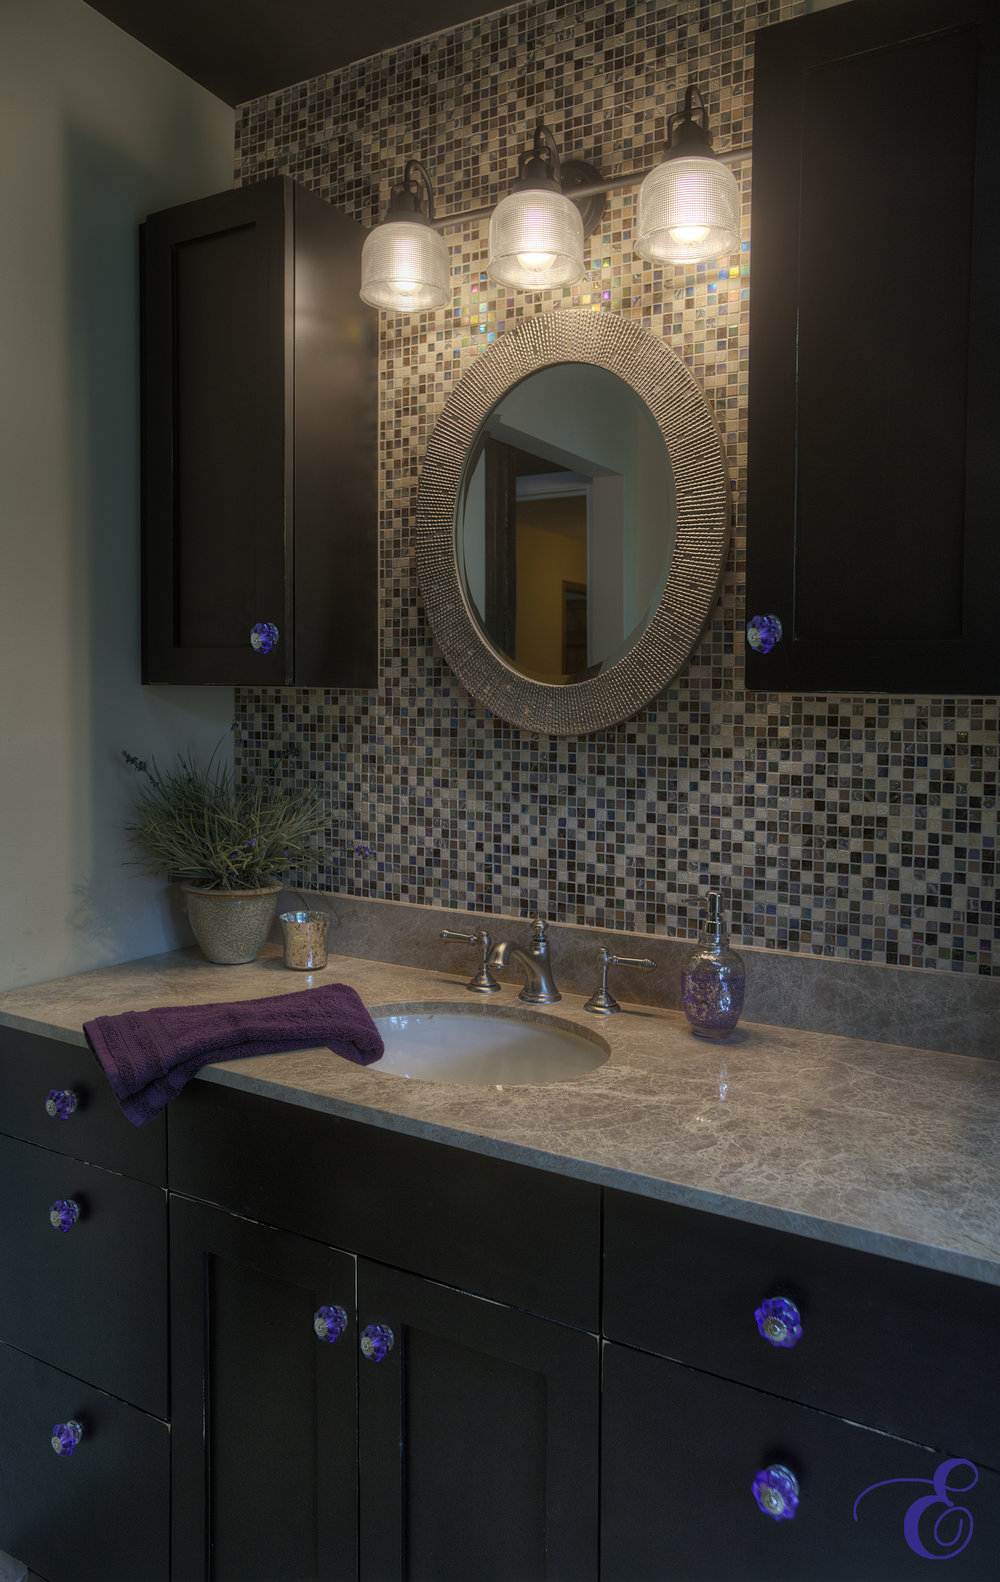 Distressed black cabinets with purple glass knobs against a tile wall